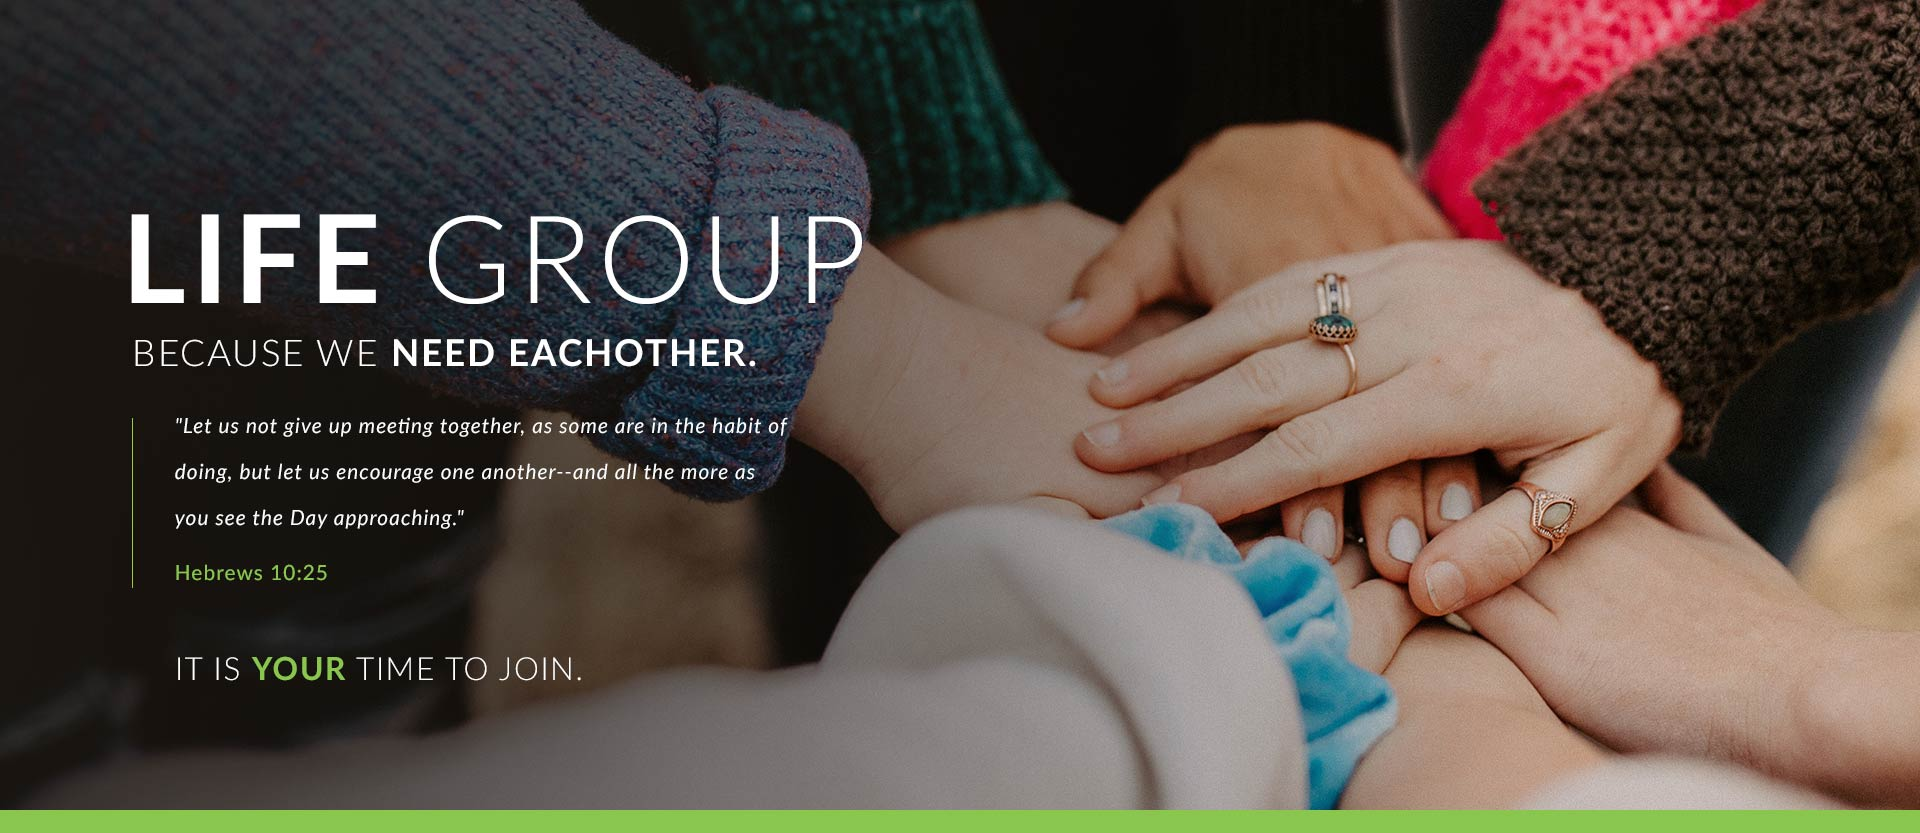 Join a Life Group - Building Community - NCC